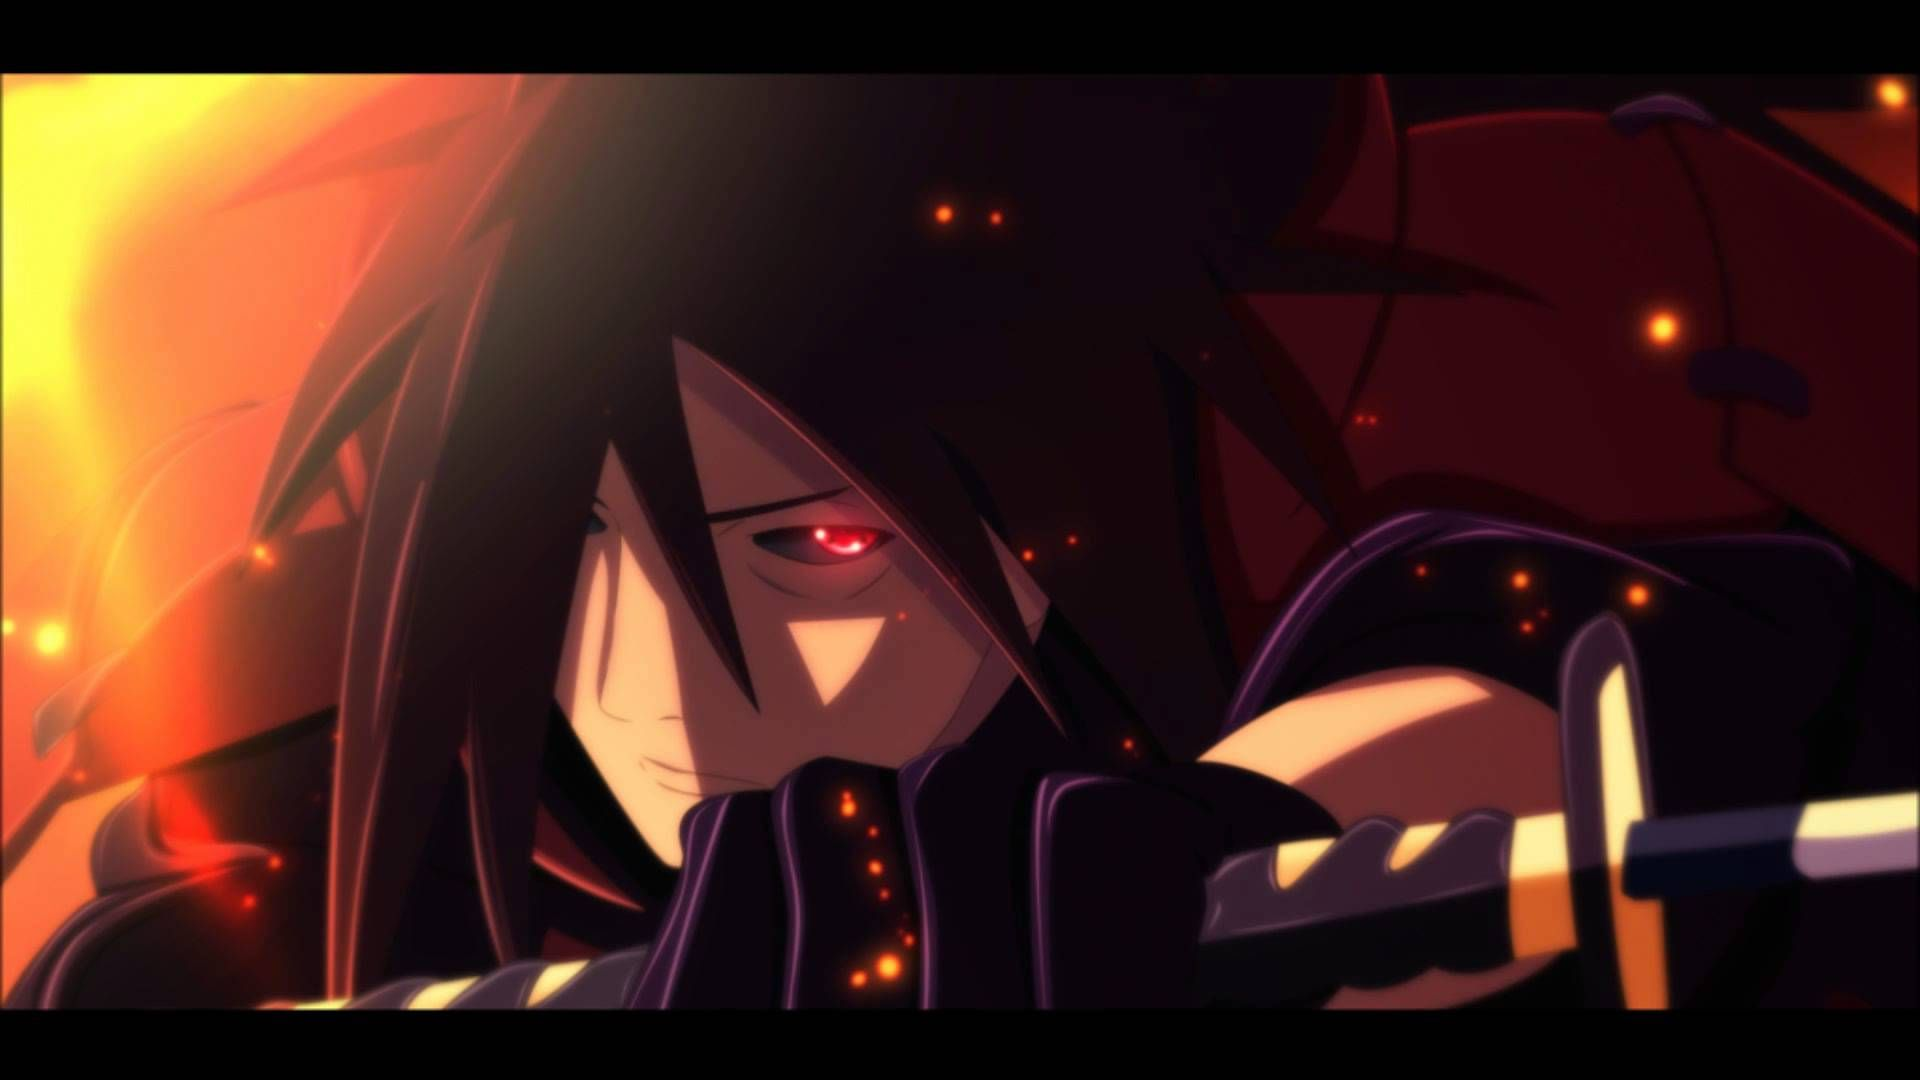 Maxresdefault Jpg 1920 1080 Madara Uchiha Wallpapers Madara